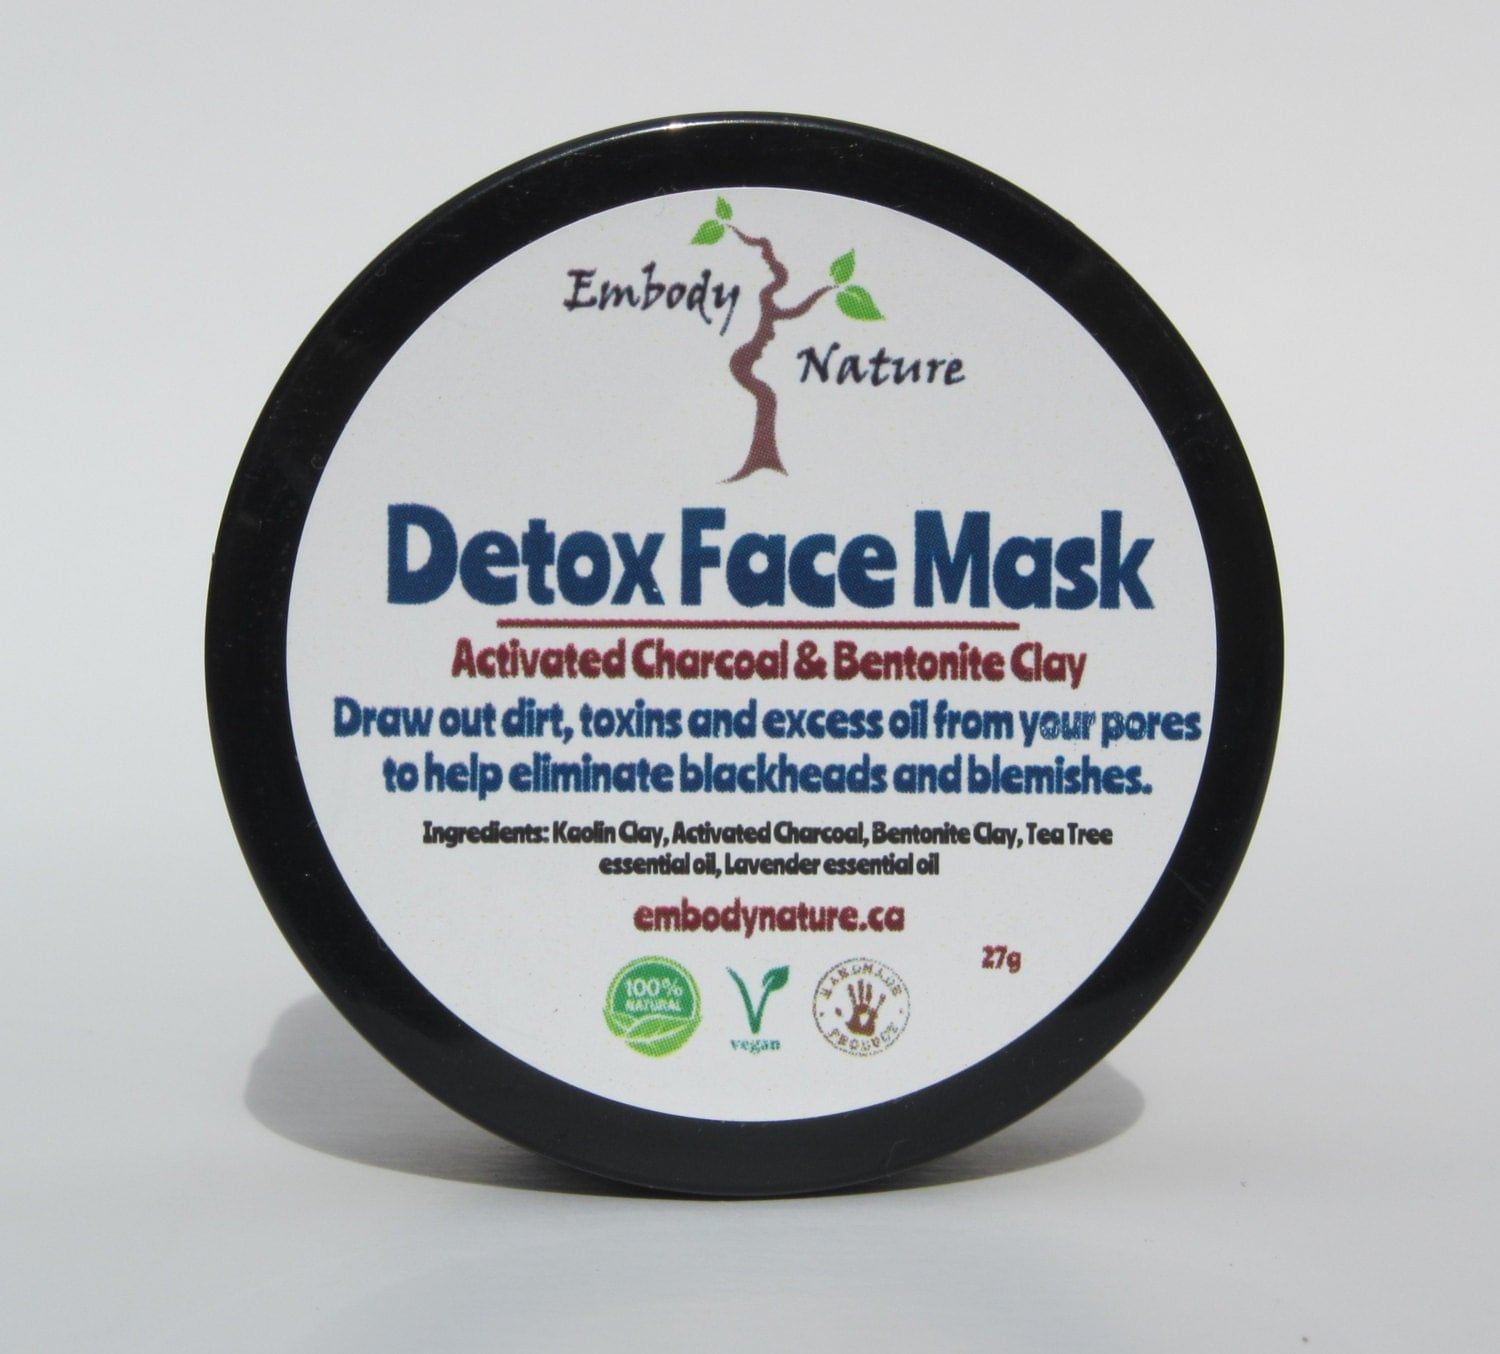 Bentonite Clay And Activated Charcoal Face Mask: All Natural Detox Face Mask Activated Charcoal And By